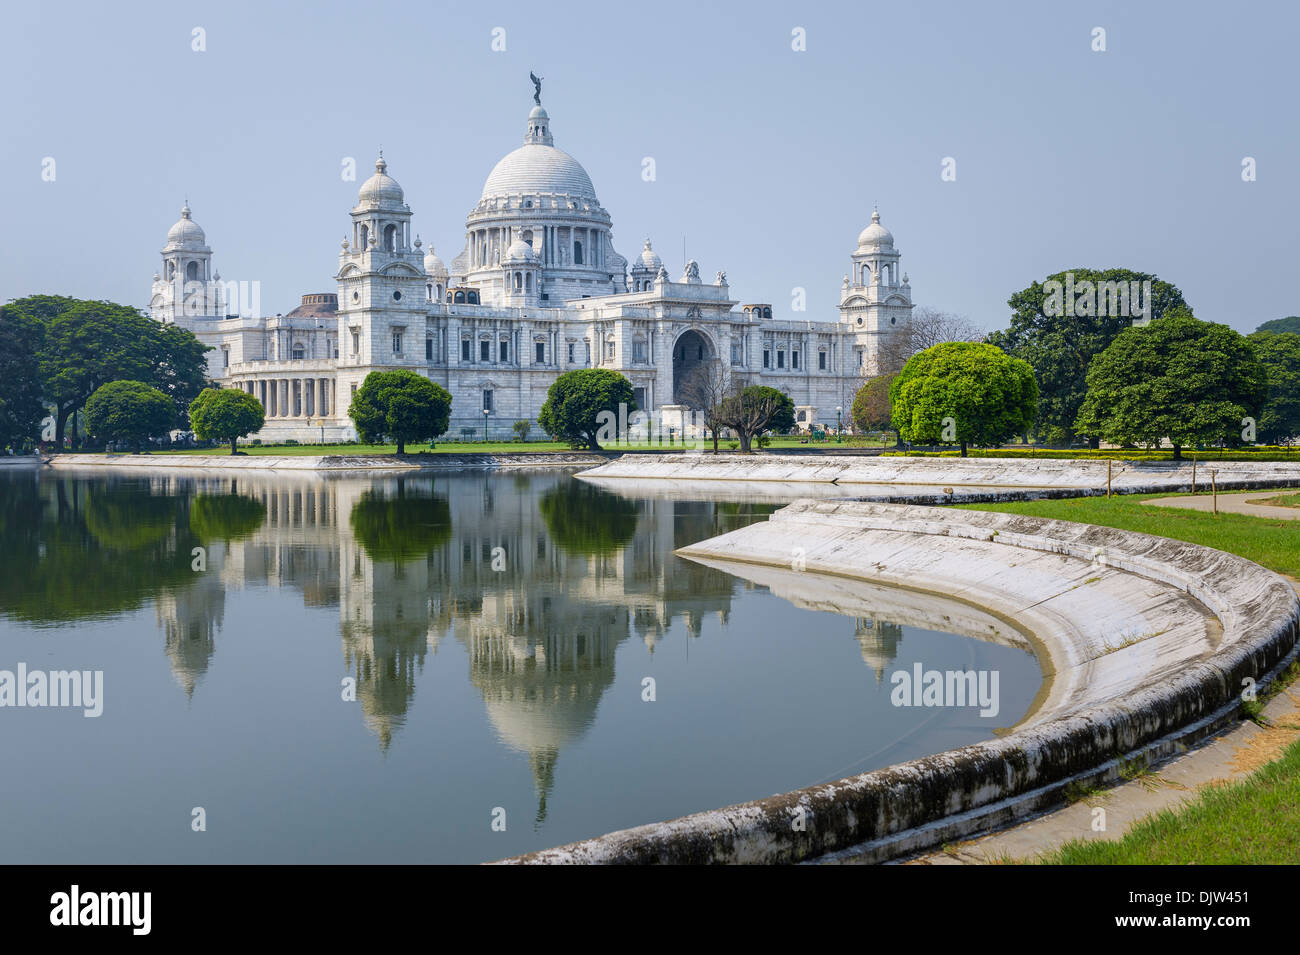 The Victoria Memorial on a bright sunny morning with blue sky with reflections of the memorial in the water, Kolkata, India. - Stock Image